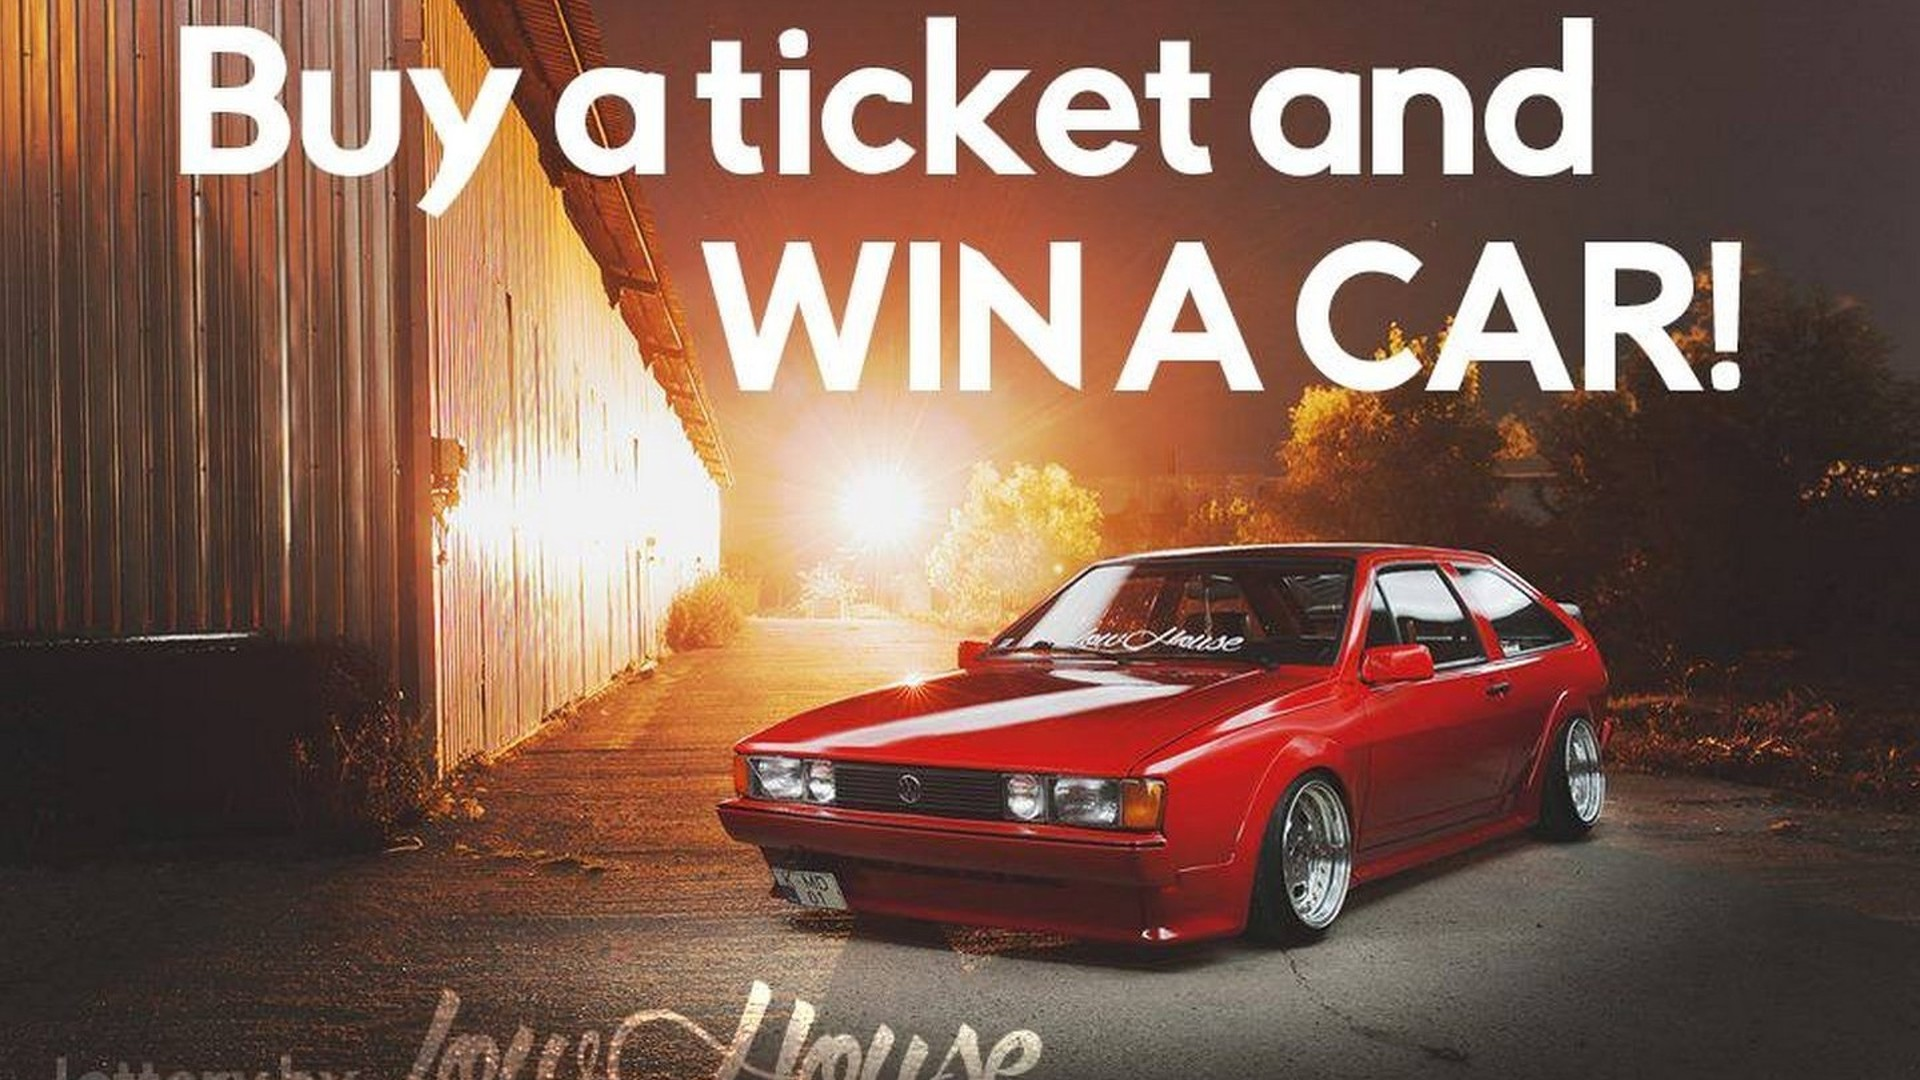 Owner raffles restored 1985 VW Scirocco to earn €5,000